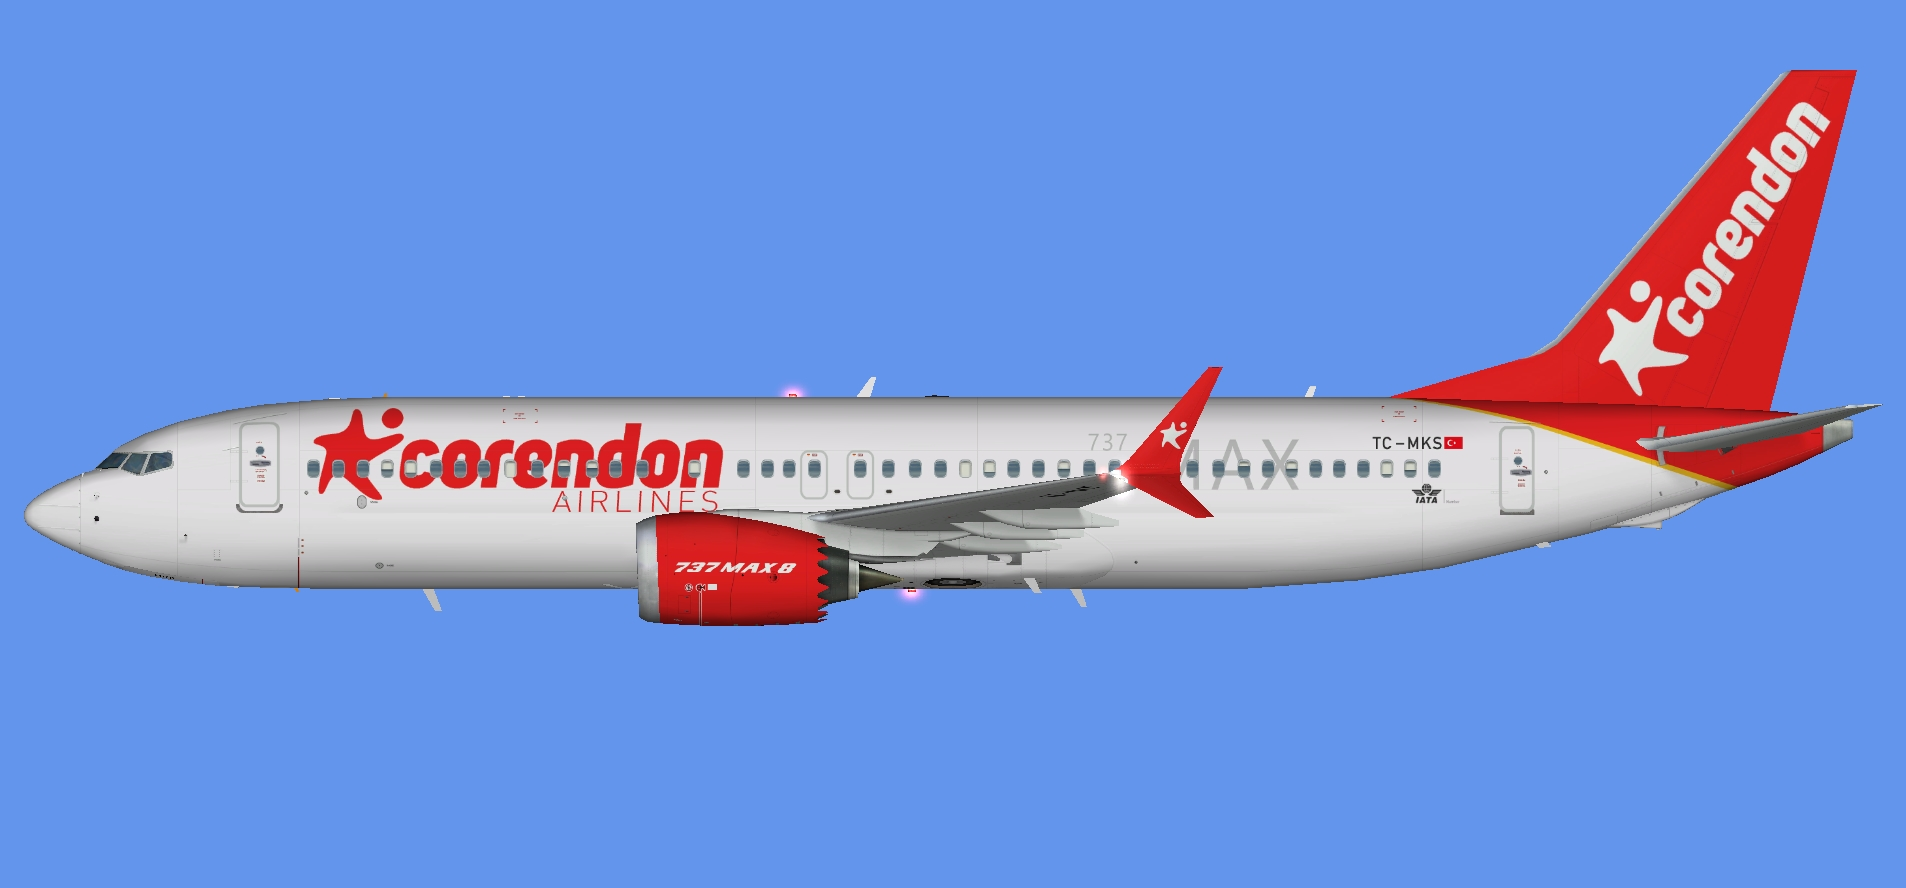 Corendon Airlines - The Flying Carpet Hub